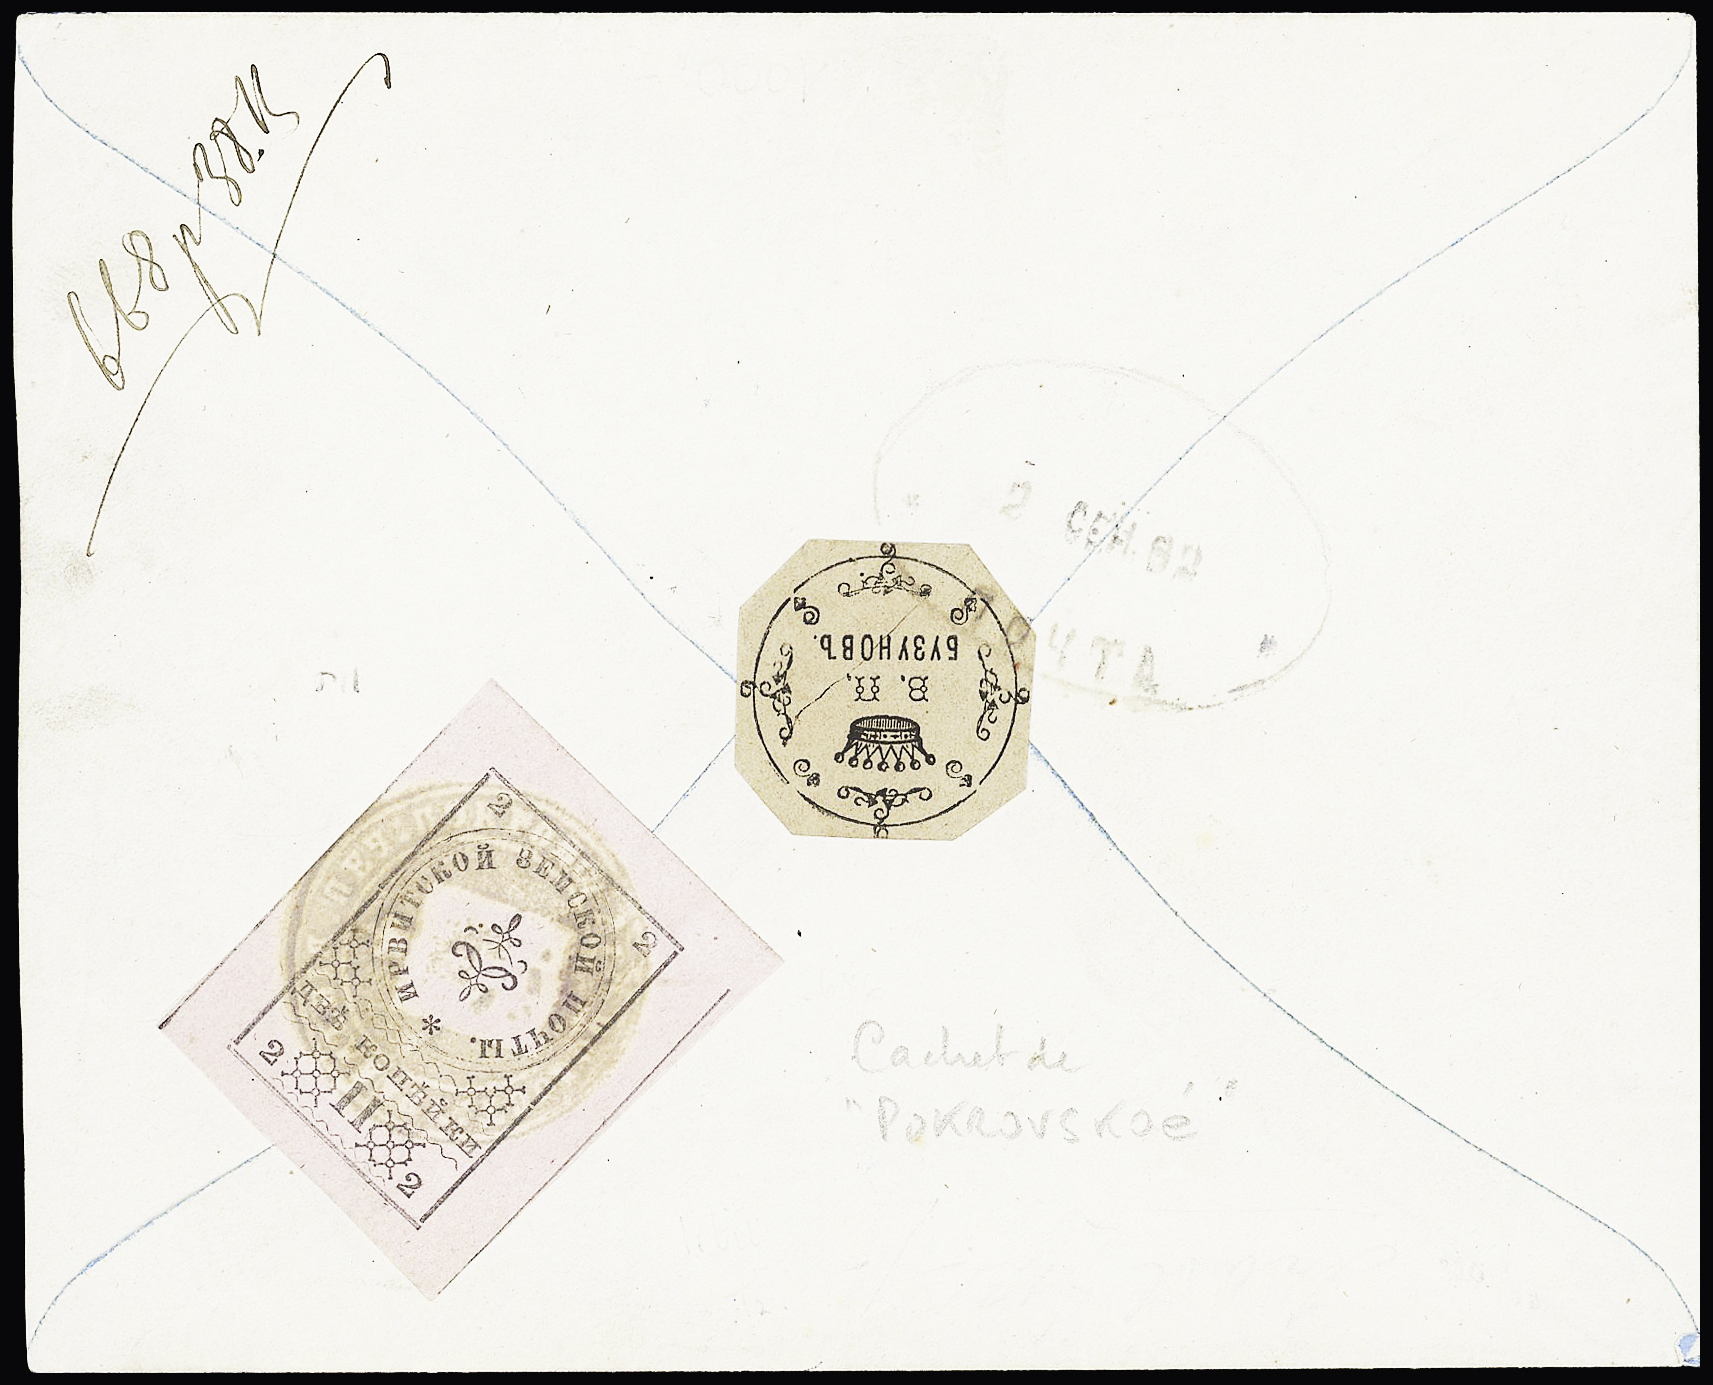 Lot 457 - Eastern Europe » RUSSIA - ZEMSTVOS » Irbit (Perm Government)  -  Le Timbre Classique SA SALE ON OFFERS N ° 37 PARIS